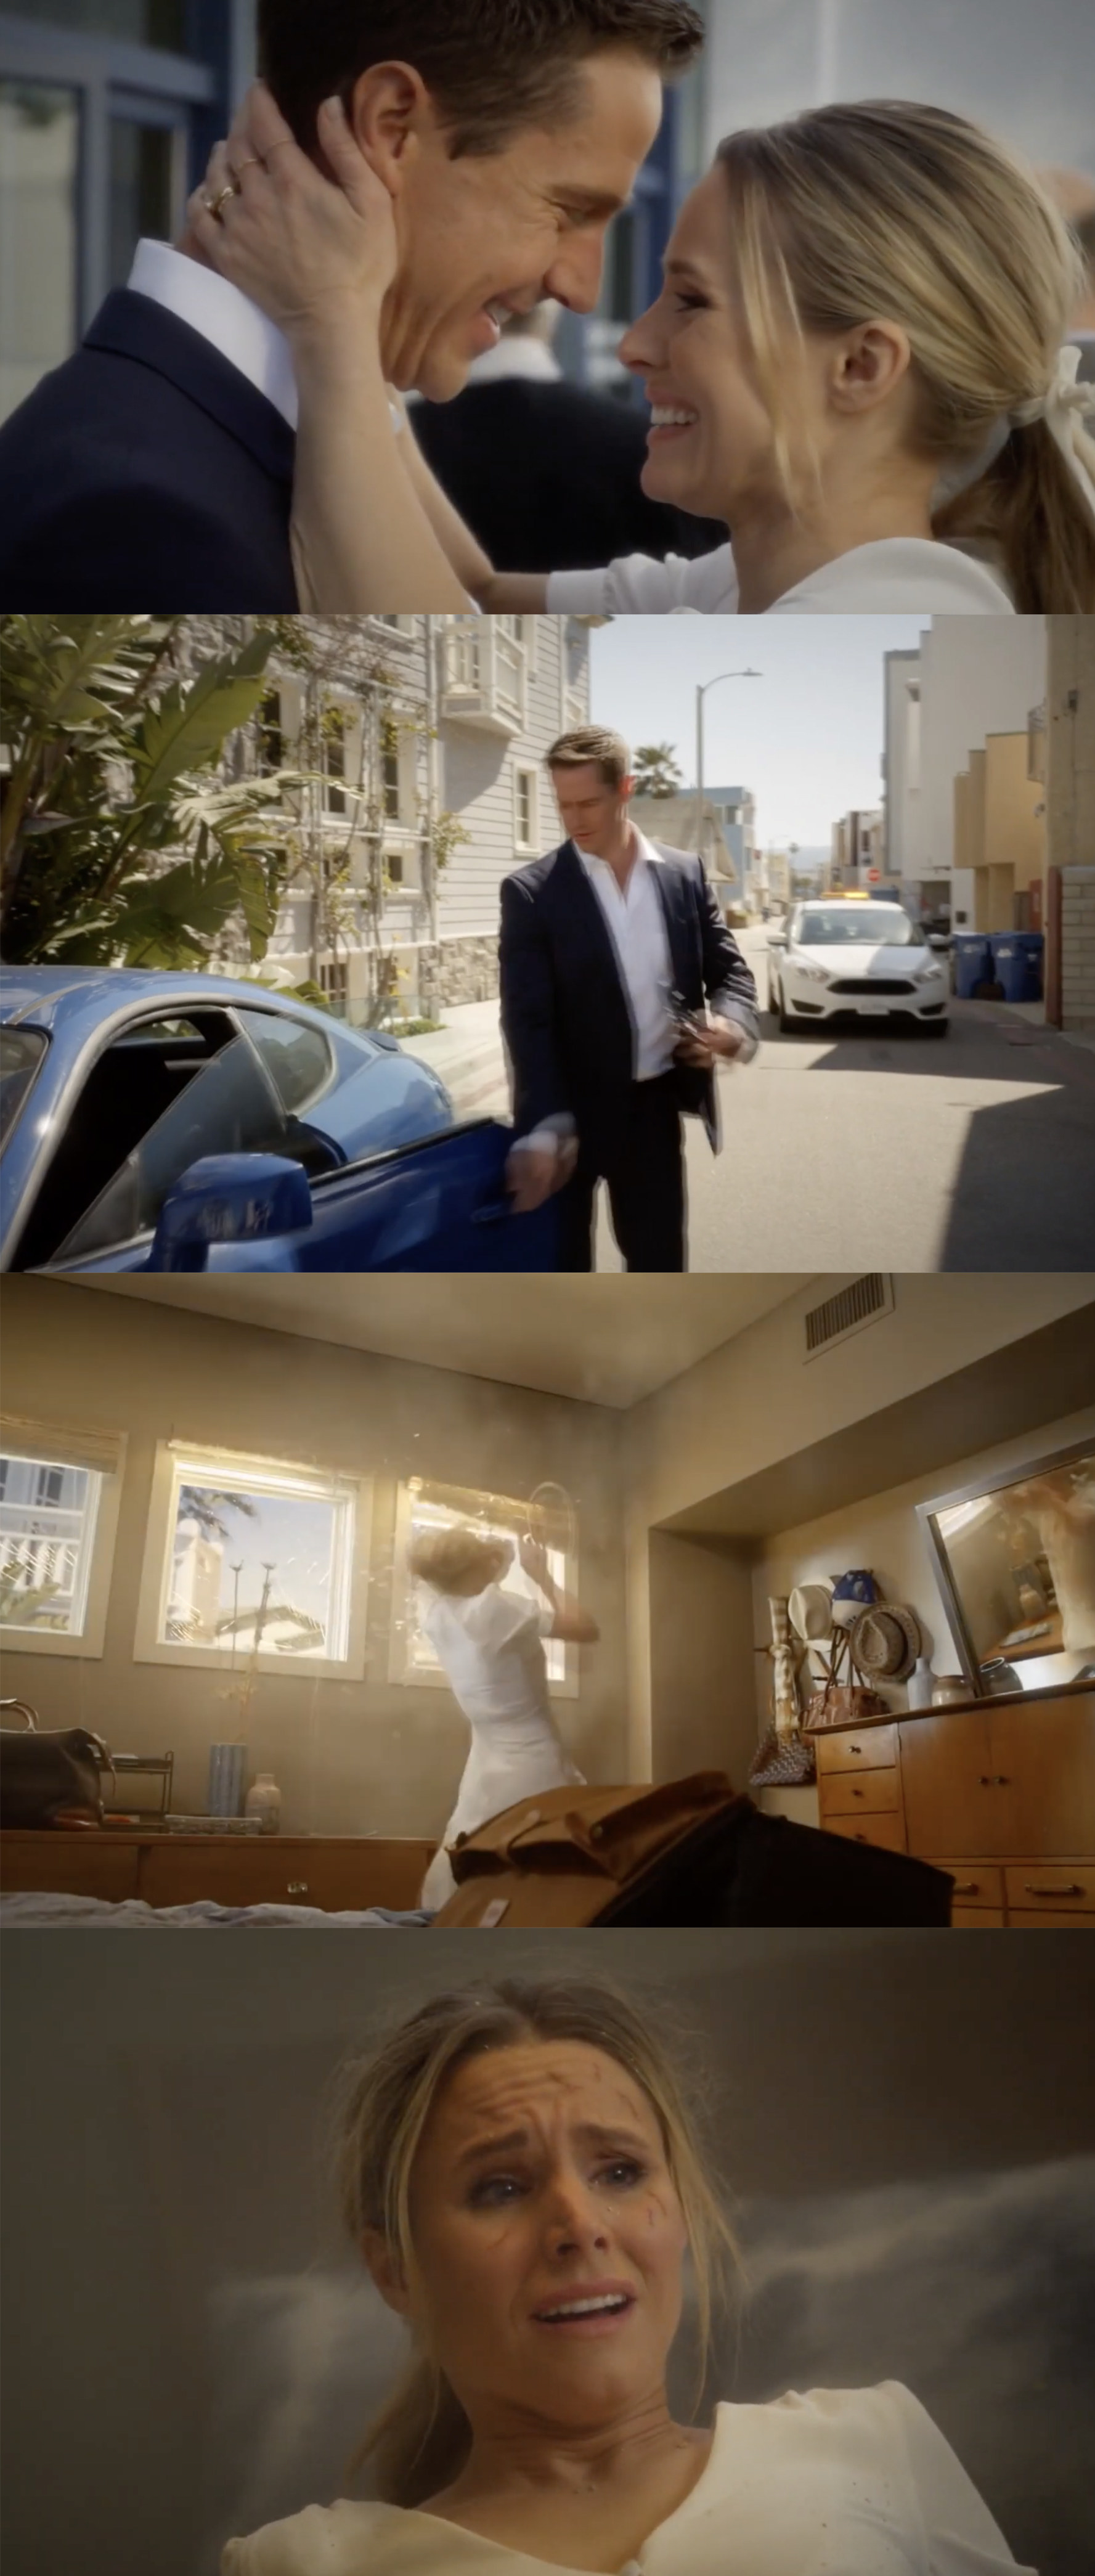 Veronica and Logan get married then go back home. Logan goes to move the car and it explodes, killing him.